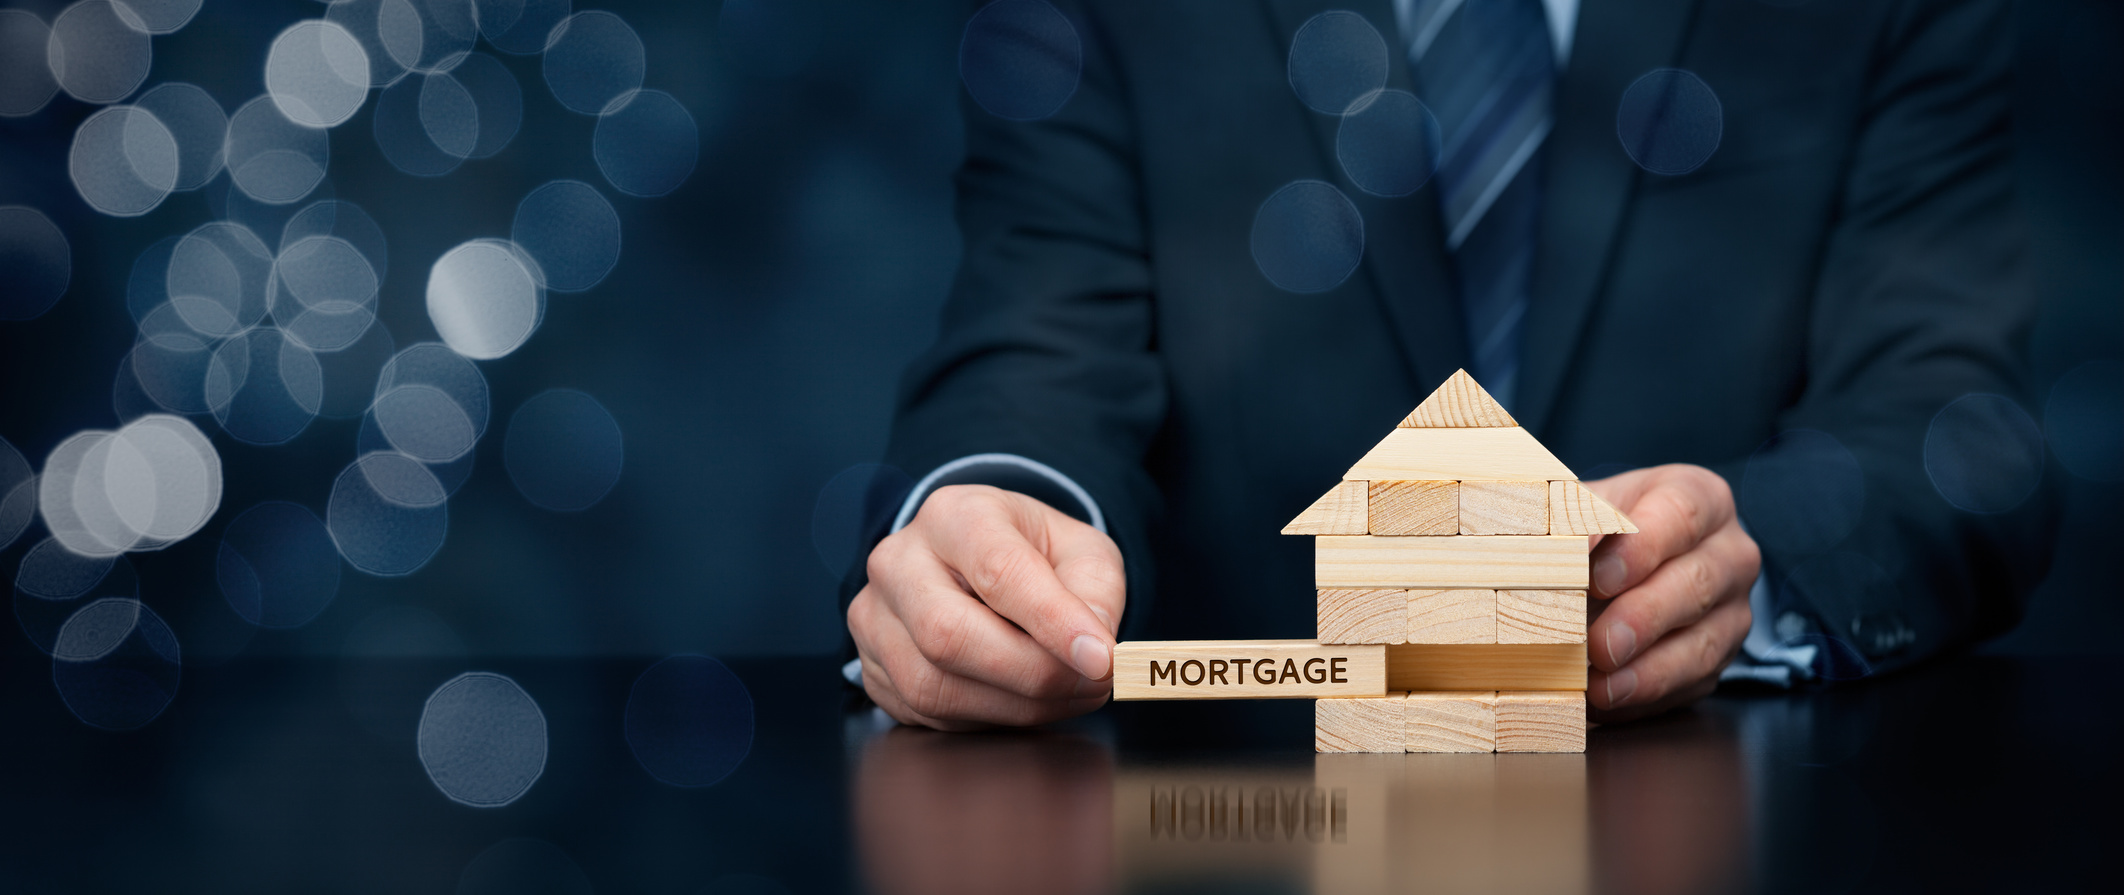 A man in a suit takes a wooden block that says mortgage on it out of a house.